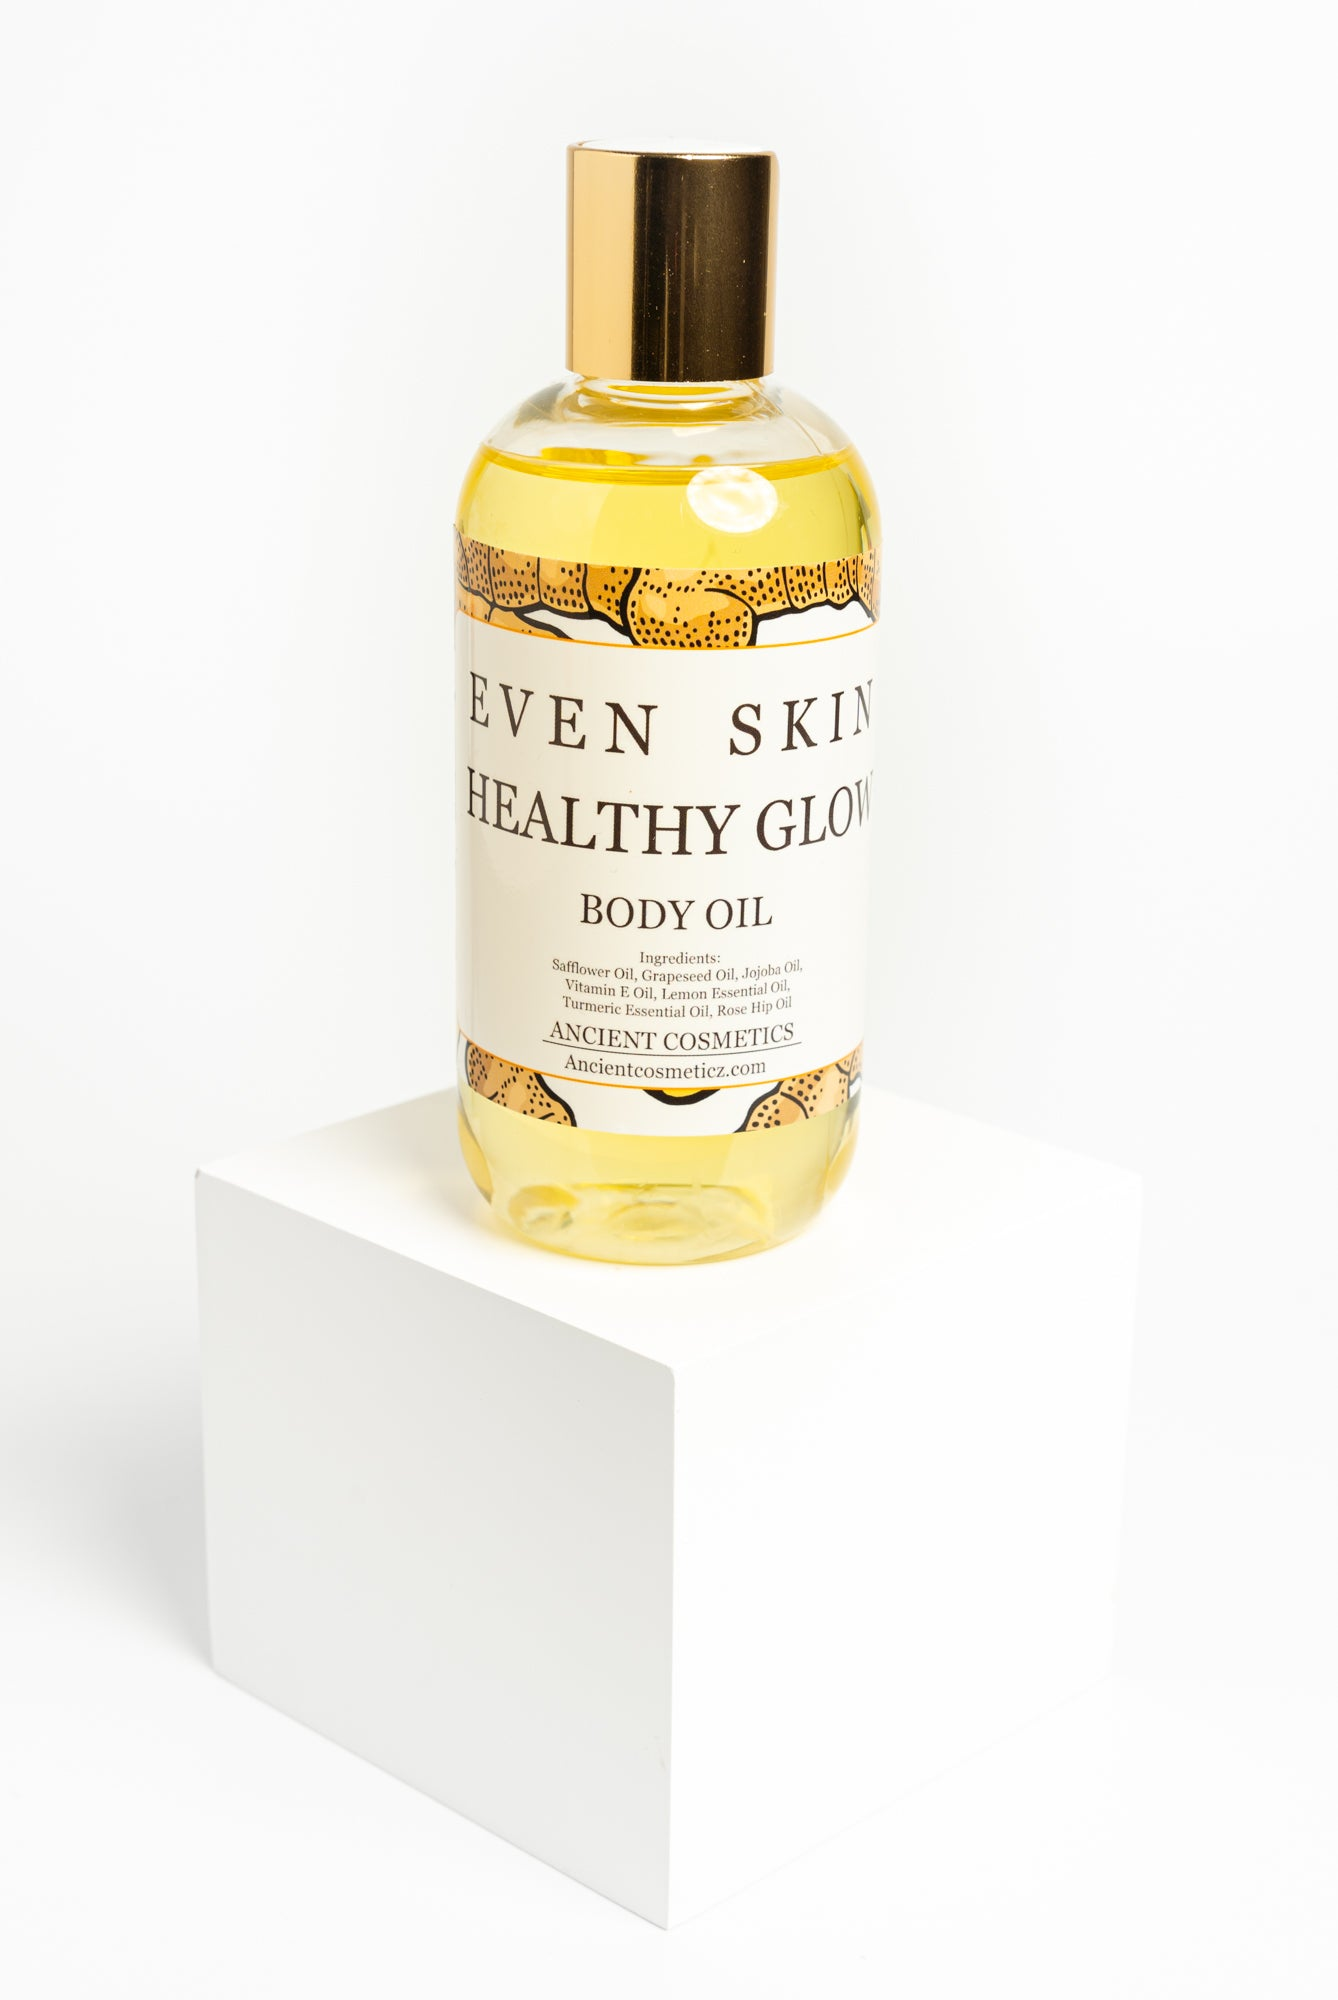 Even Skin Healthy Glow Body Oil Ancient Cosmetics